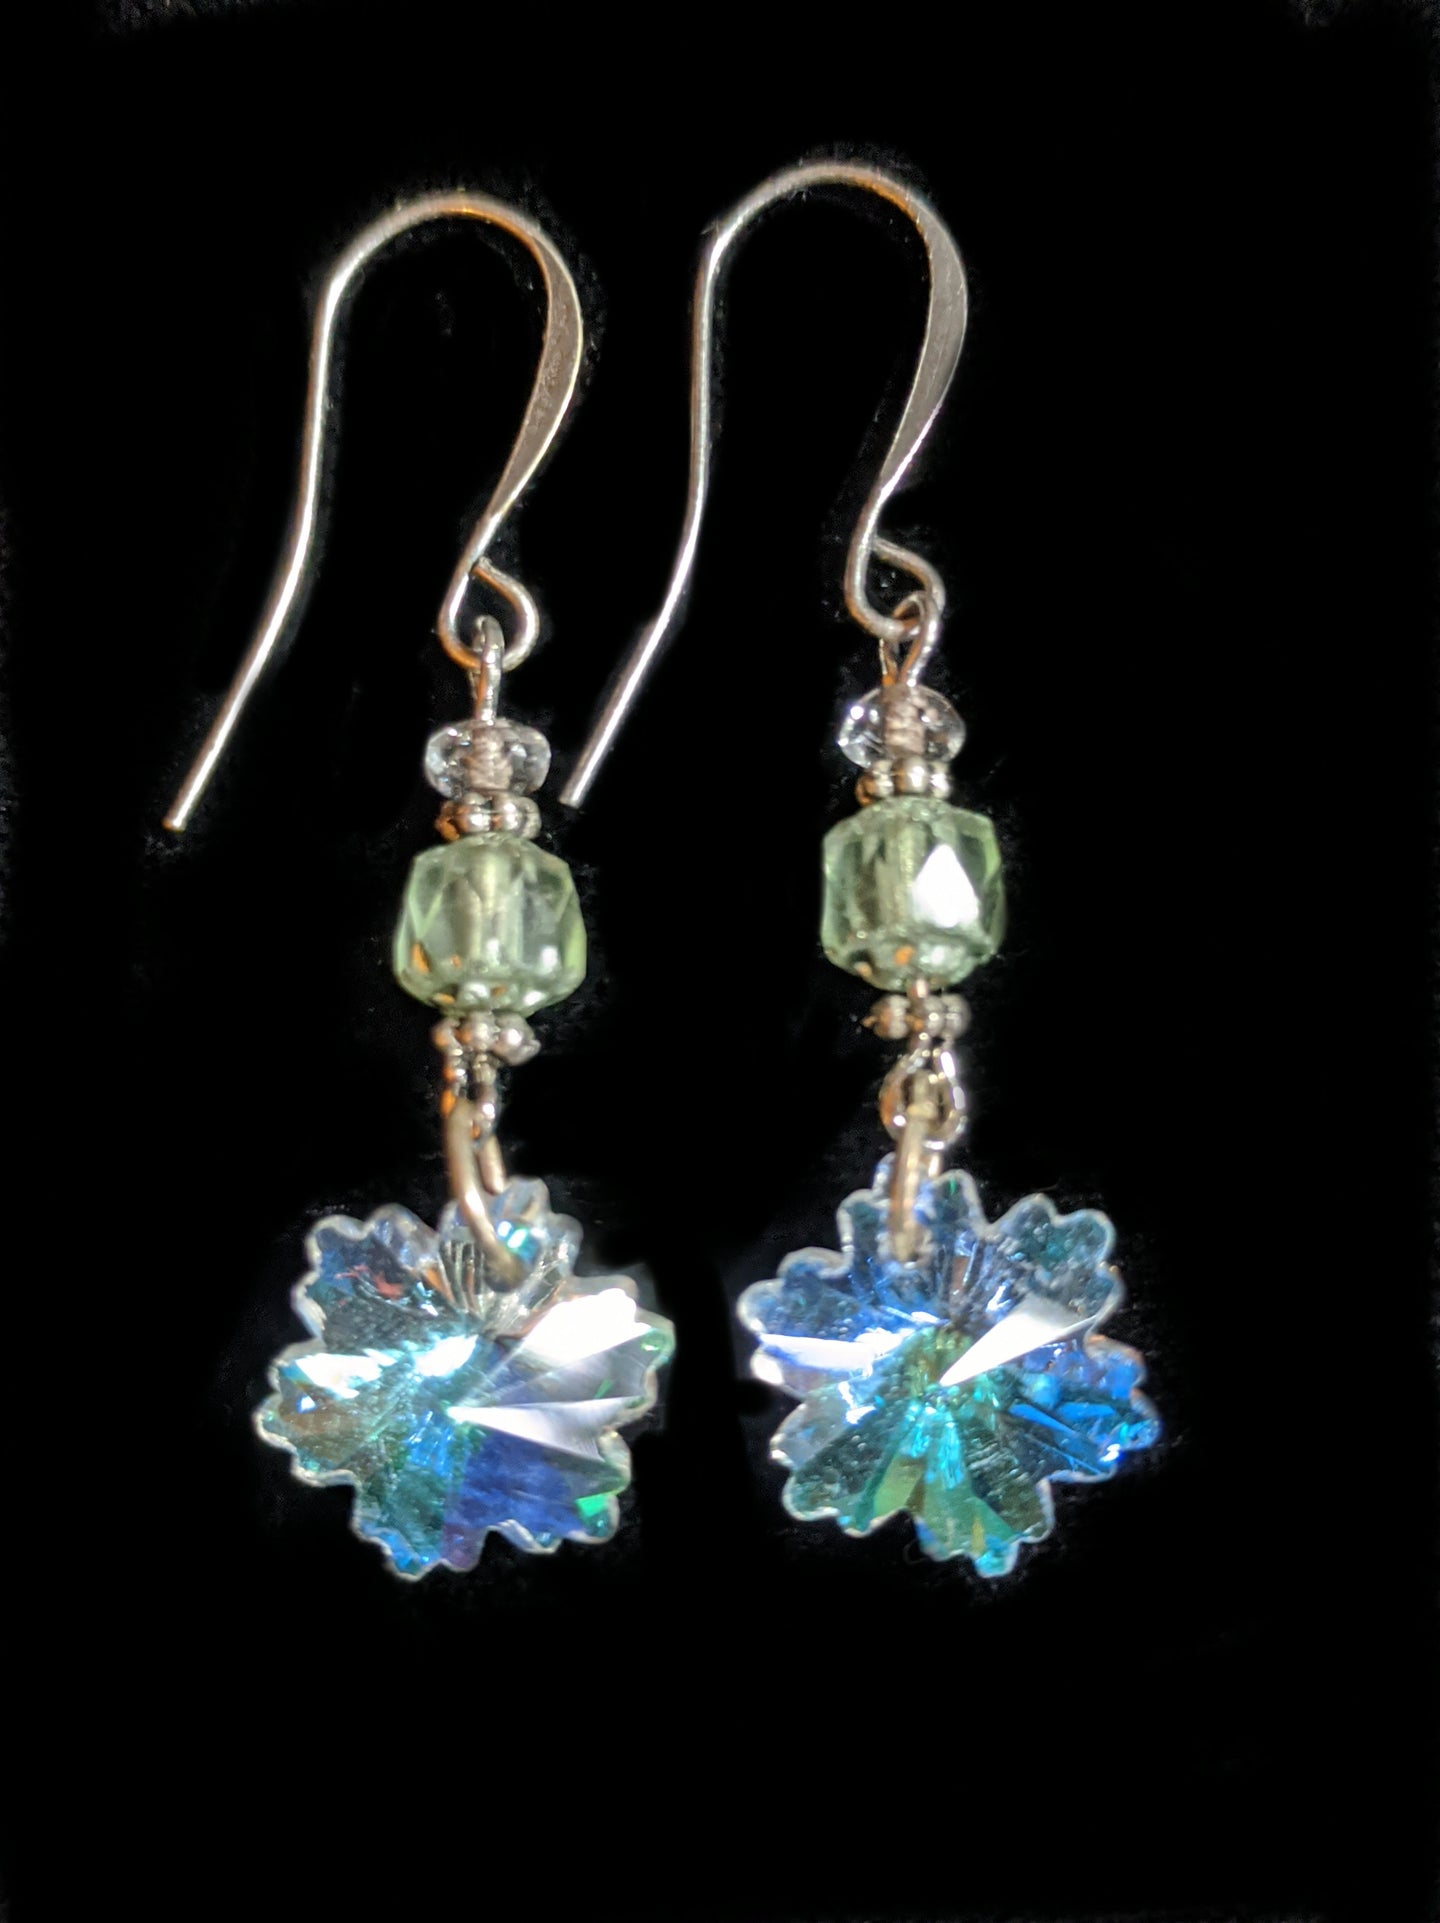 crystal snowflake earrings # 10 - sunroot studio